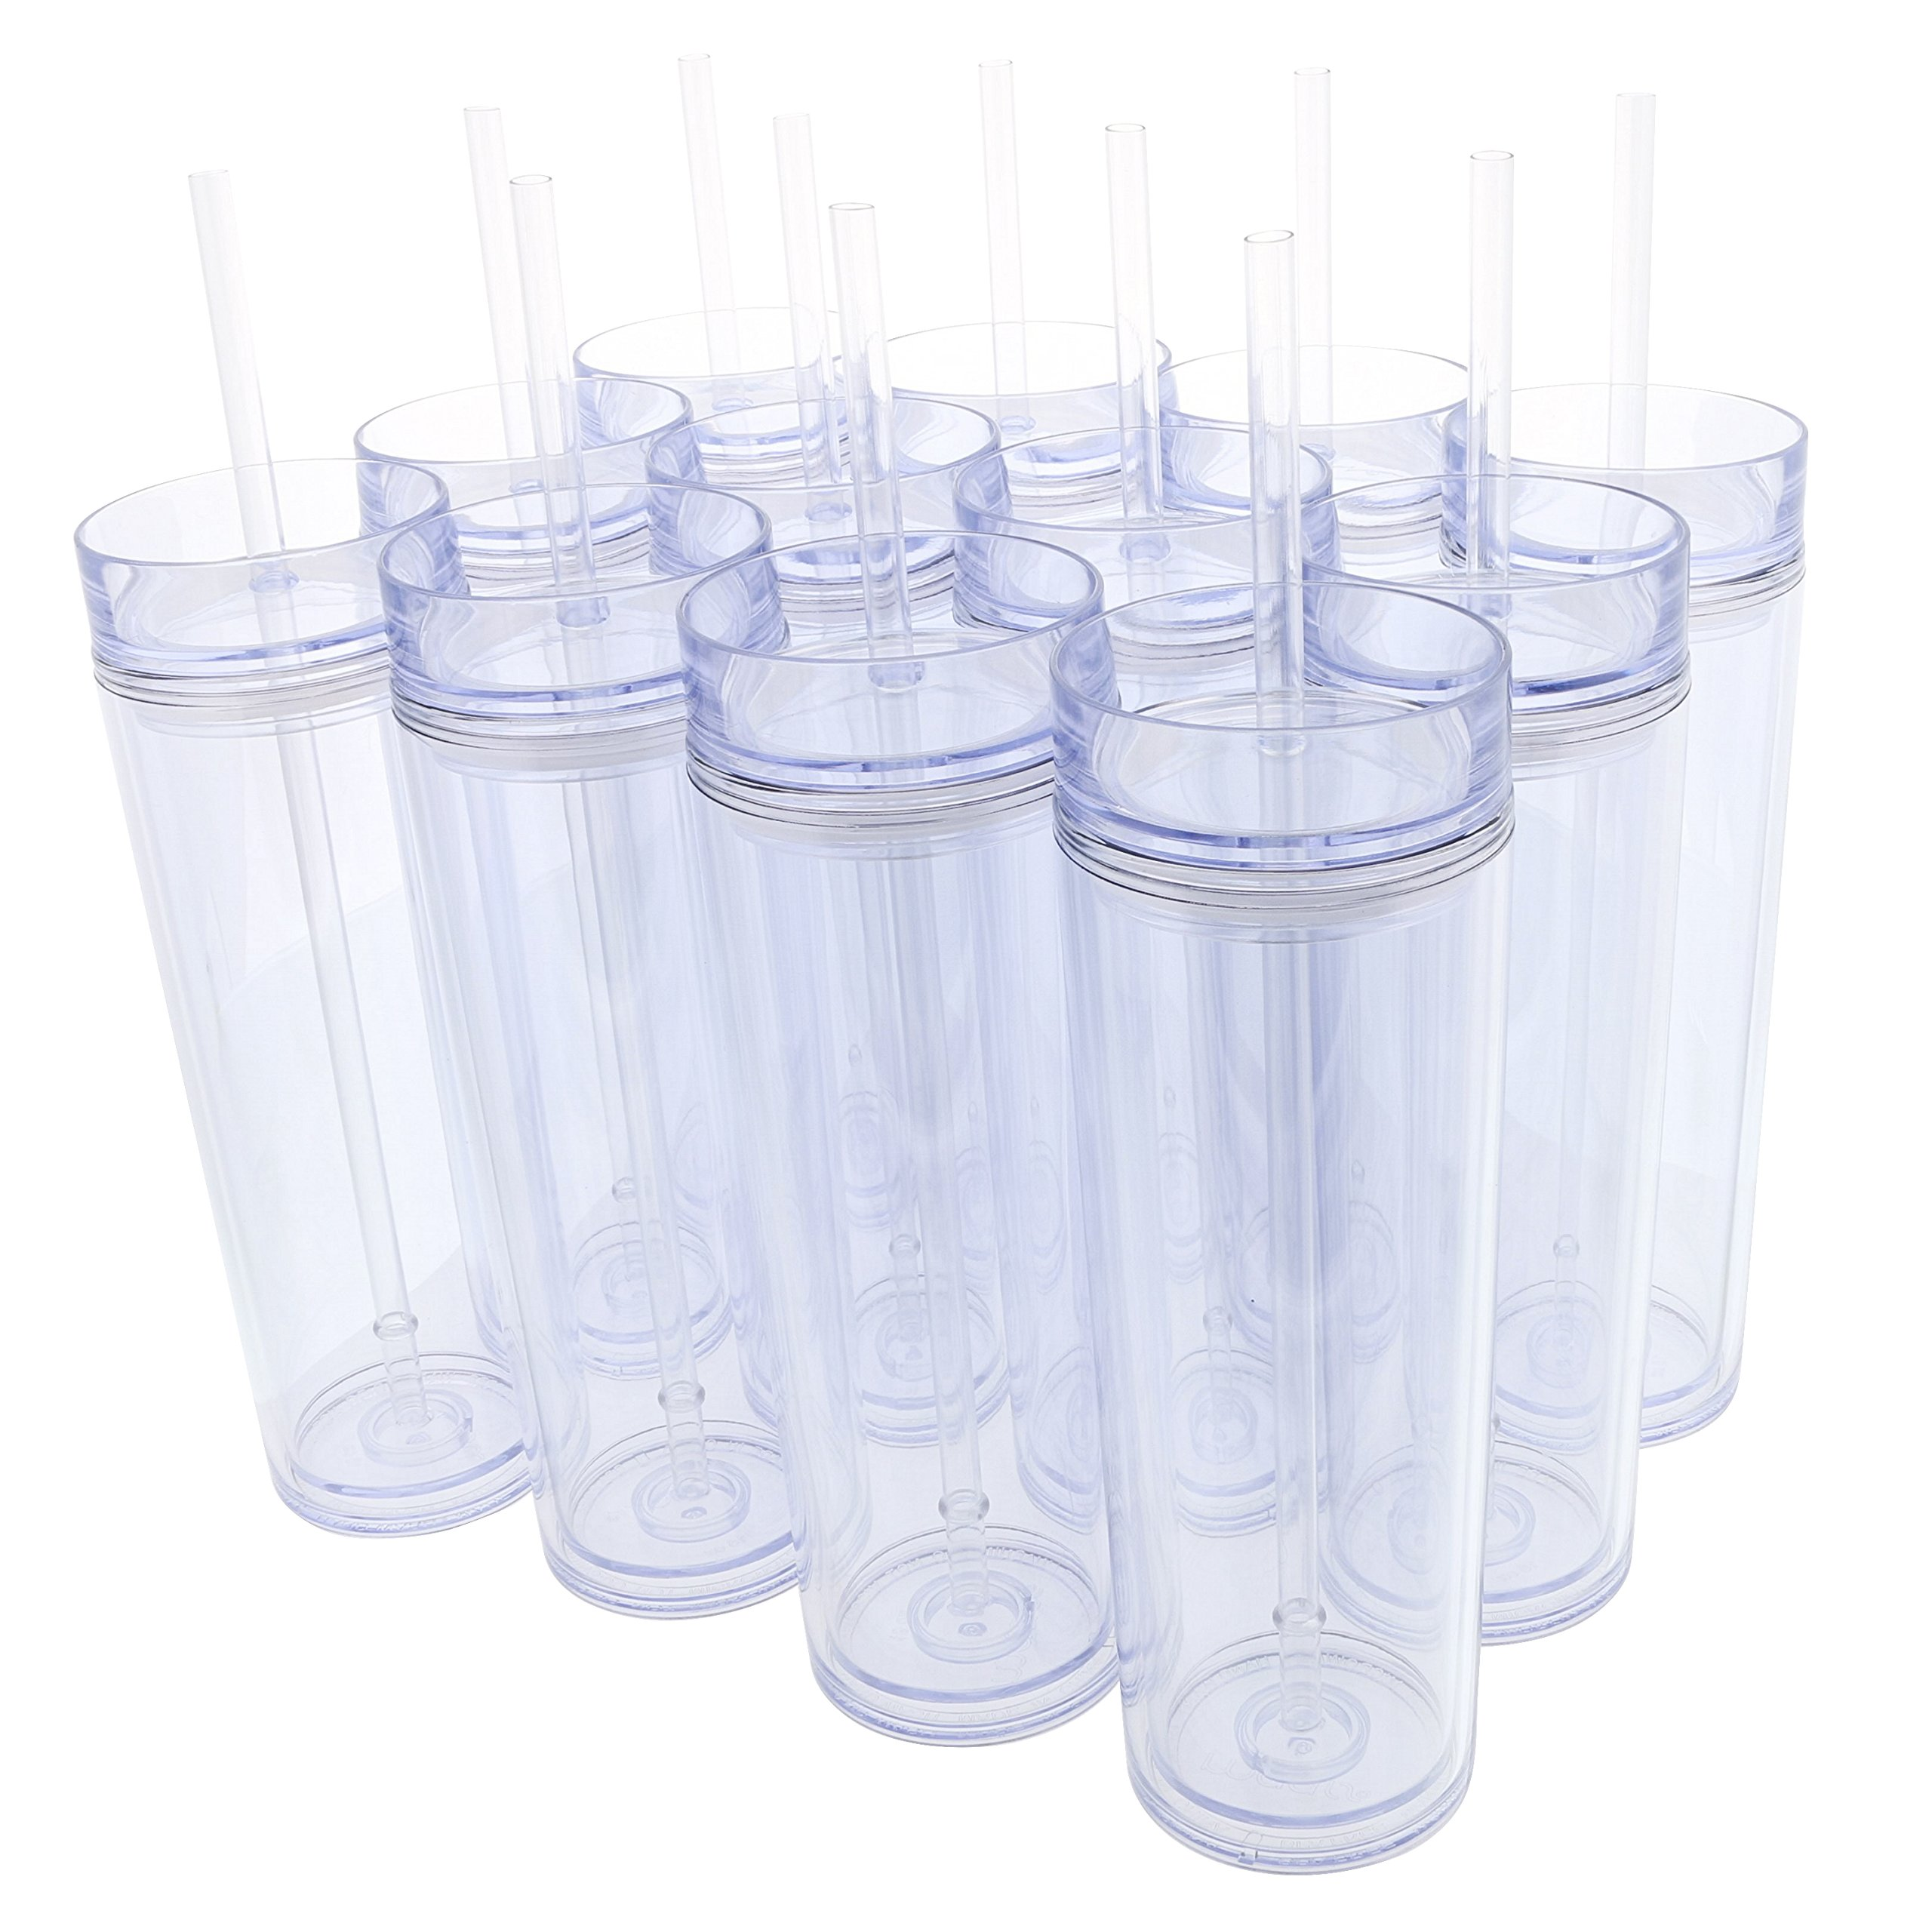 Set of 12 Double Wall Skinny Acrylic Tumblers 16 Oz, with Straws (Clear)